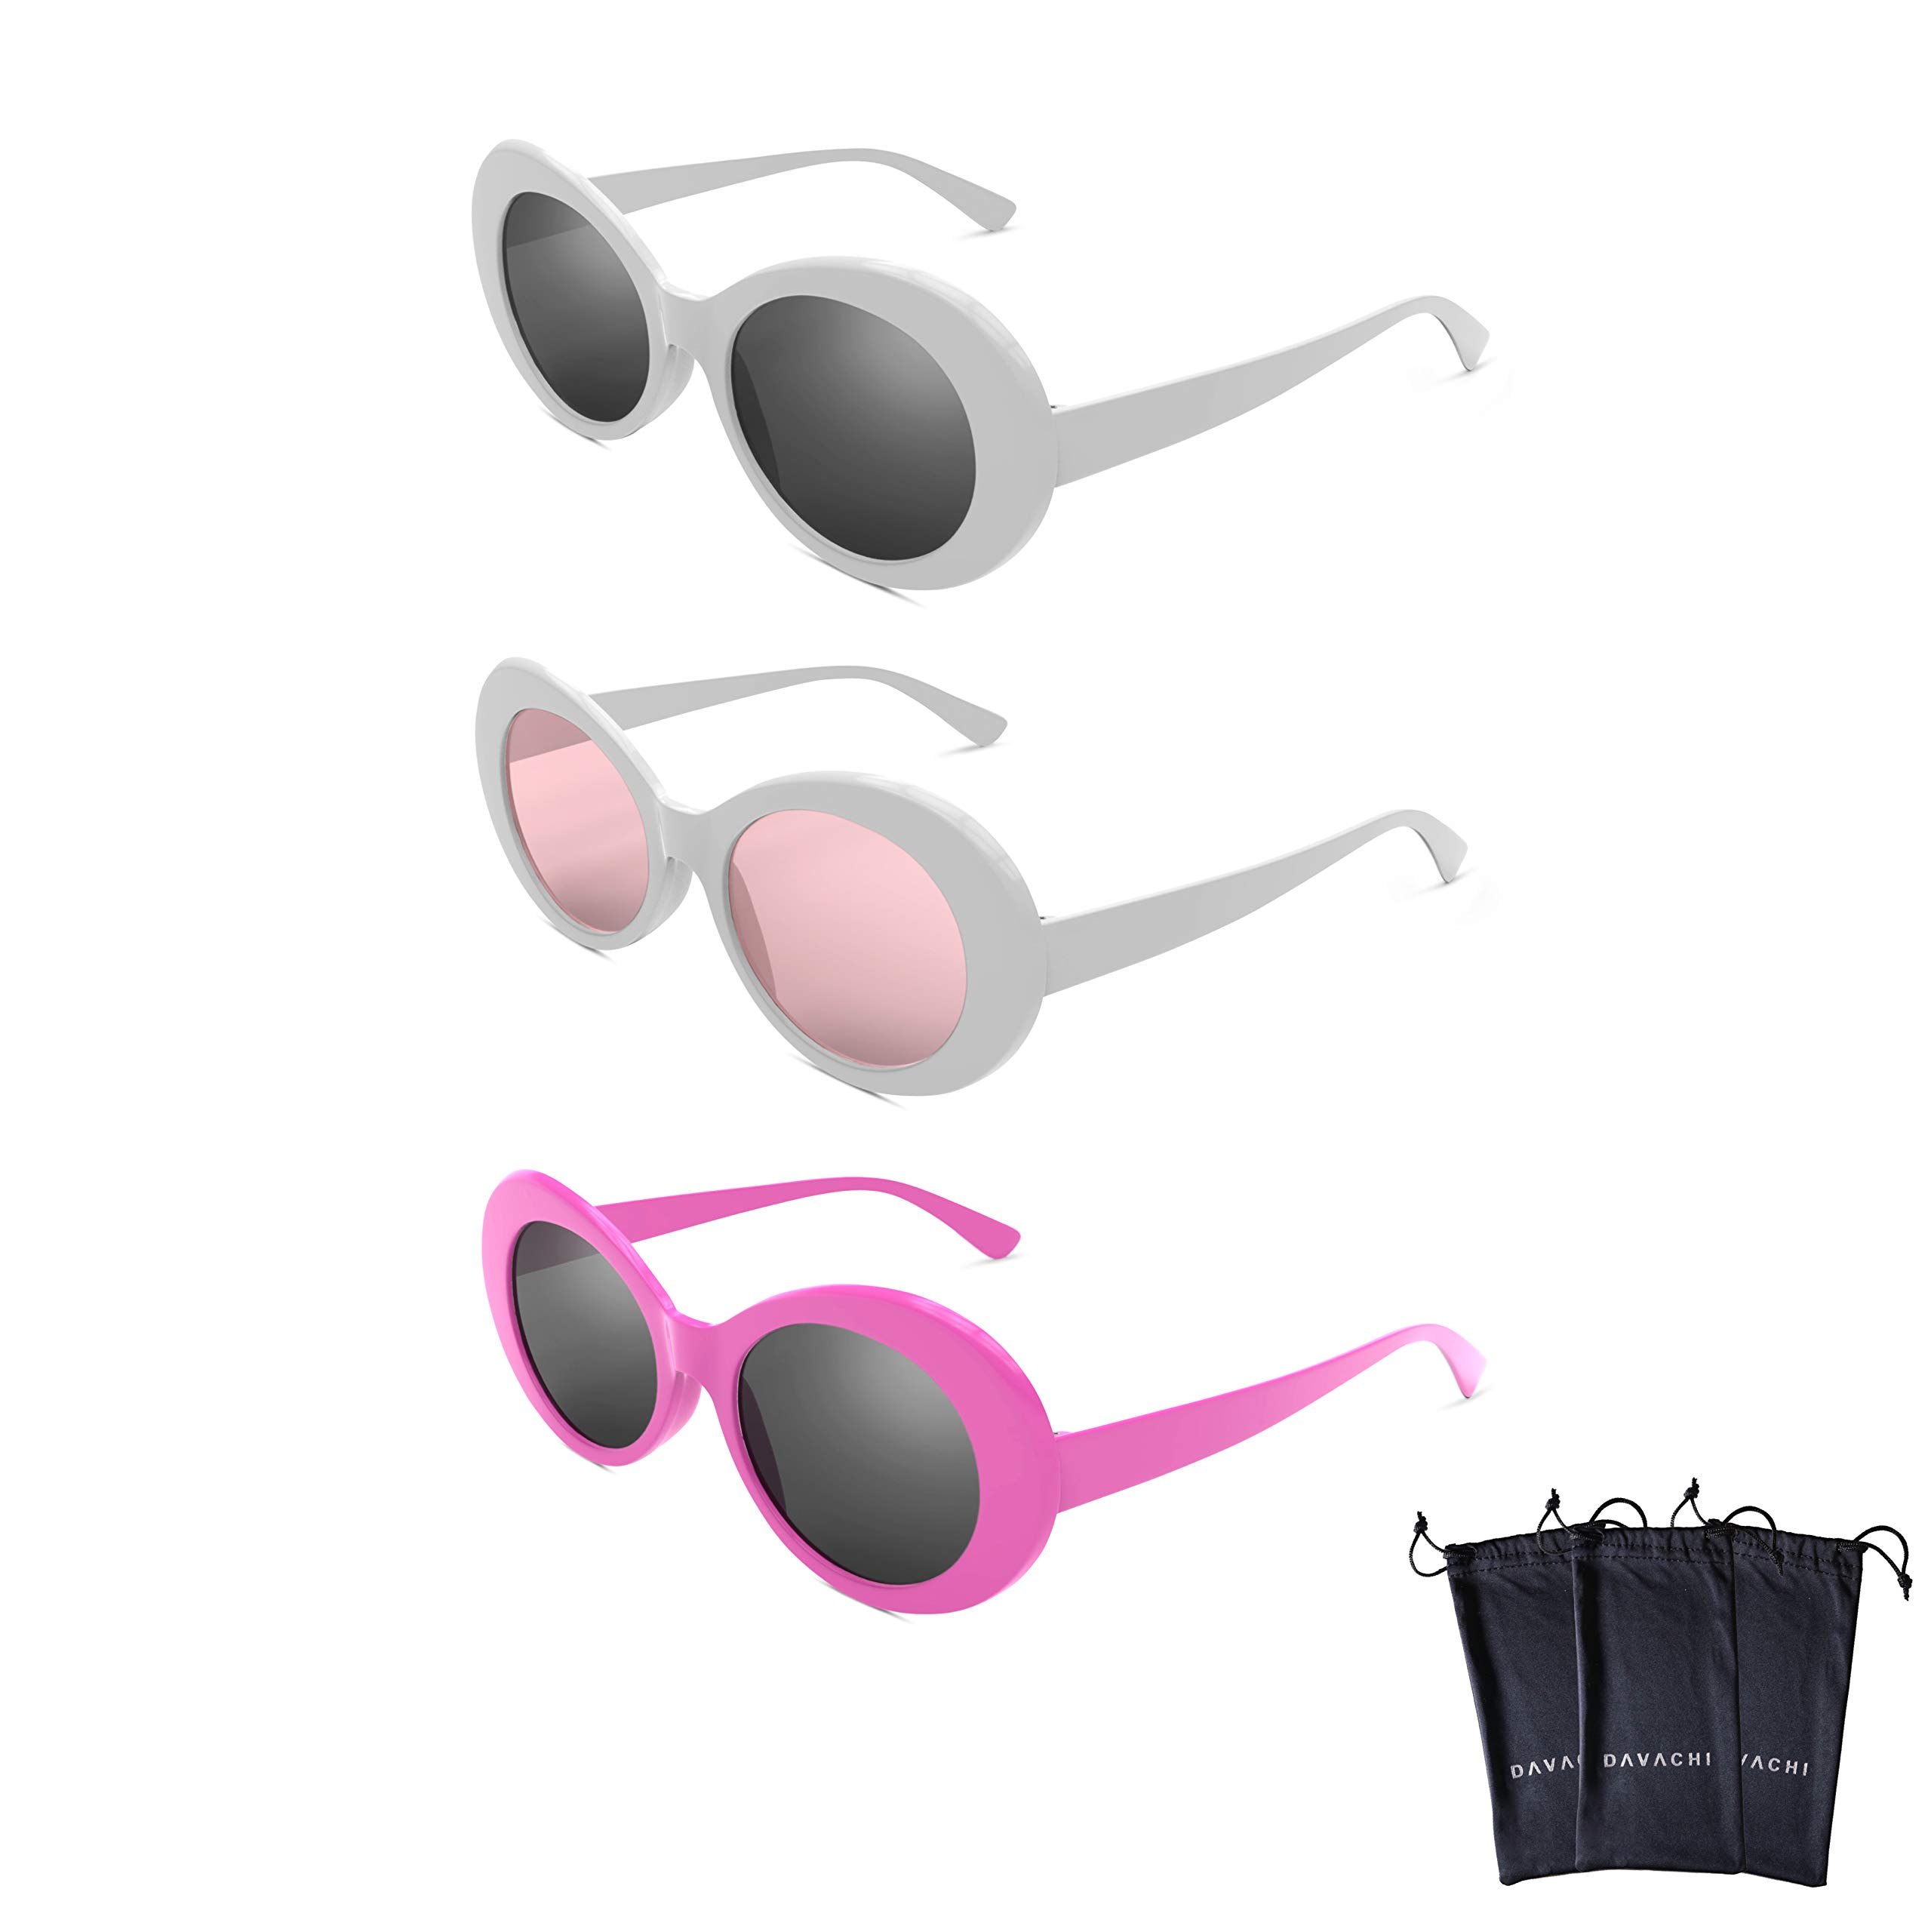 Davachi Clout Goggles Set With Cases Kurt Cobain Oval Sunglasses White, Pink, Pink Lense